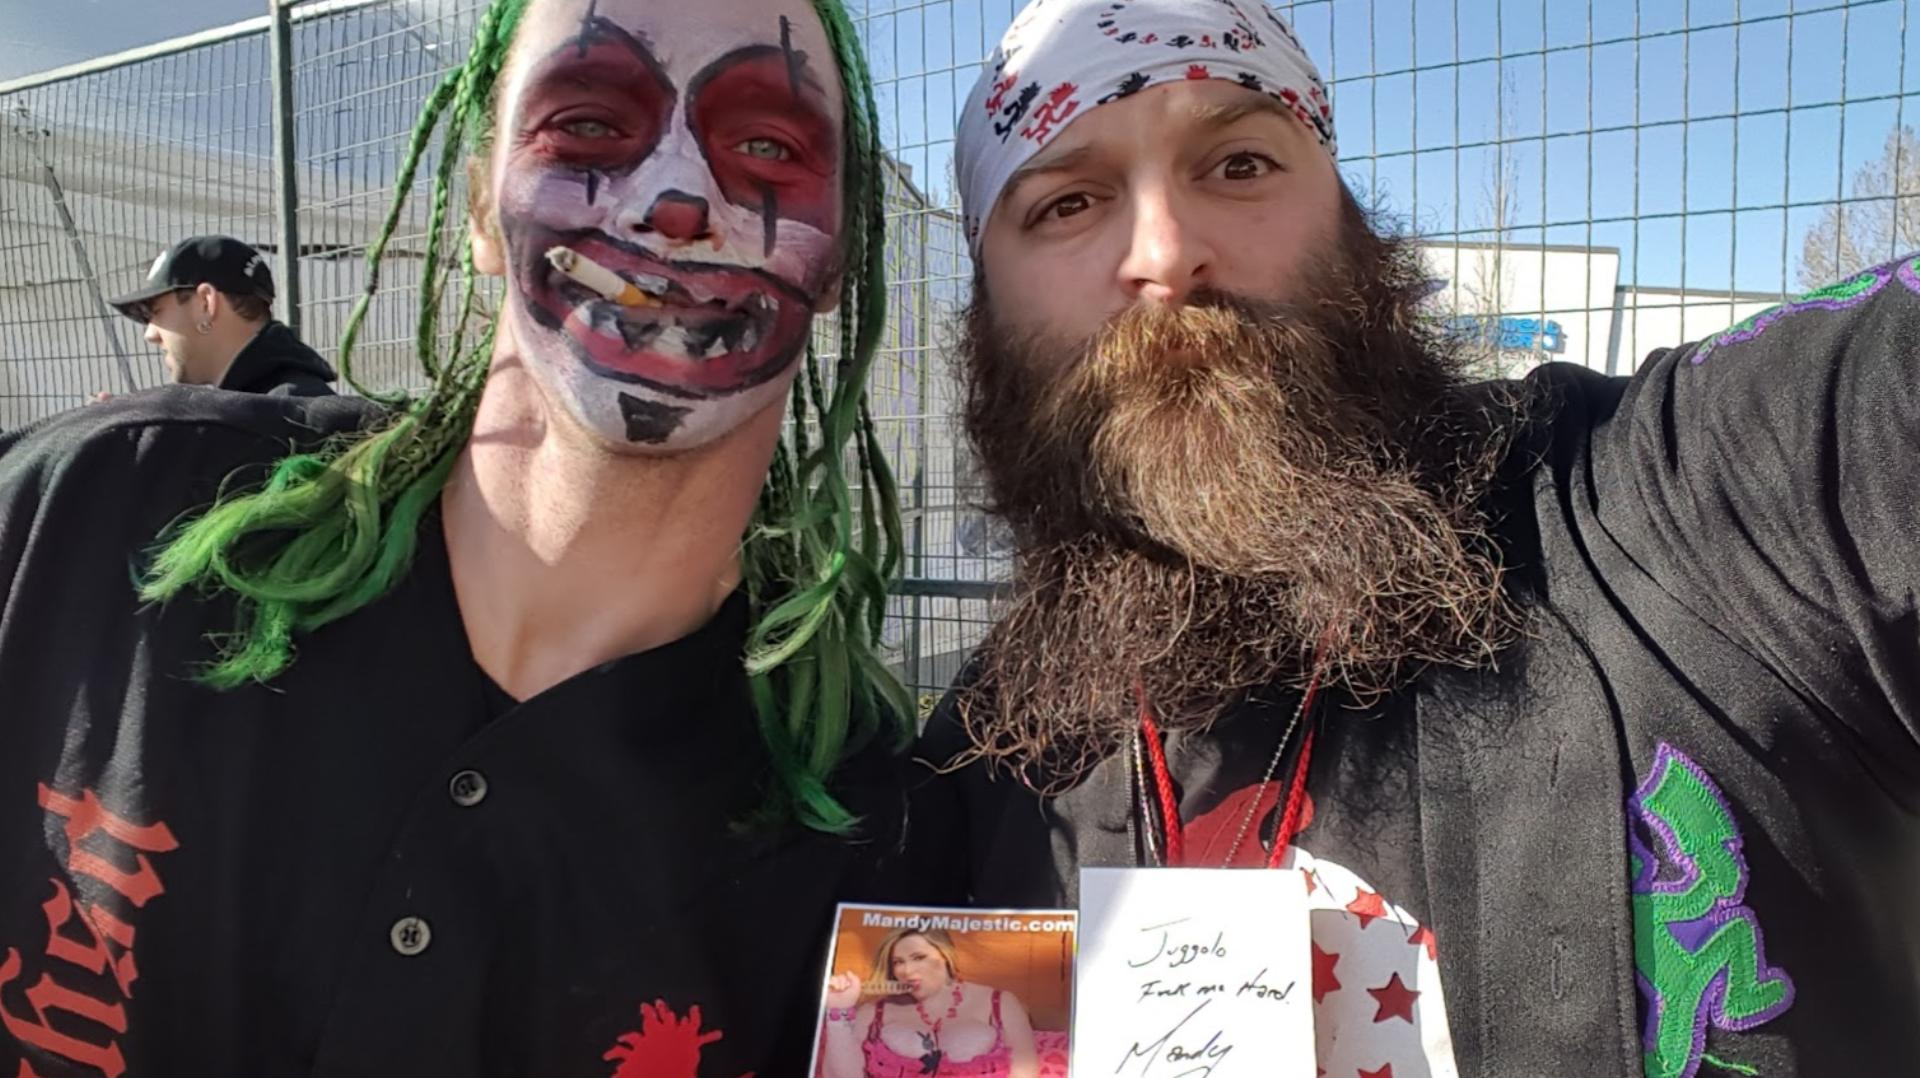 gathering of the juggalos - DriverLayer Search Engine